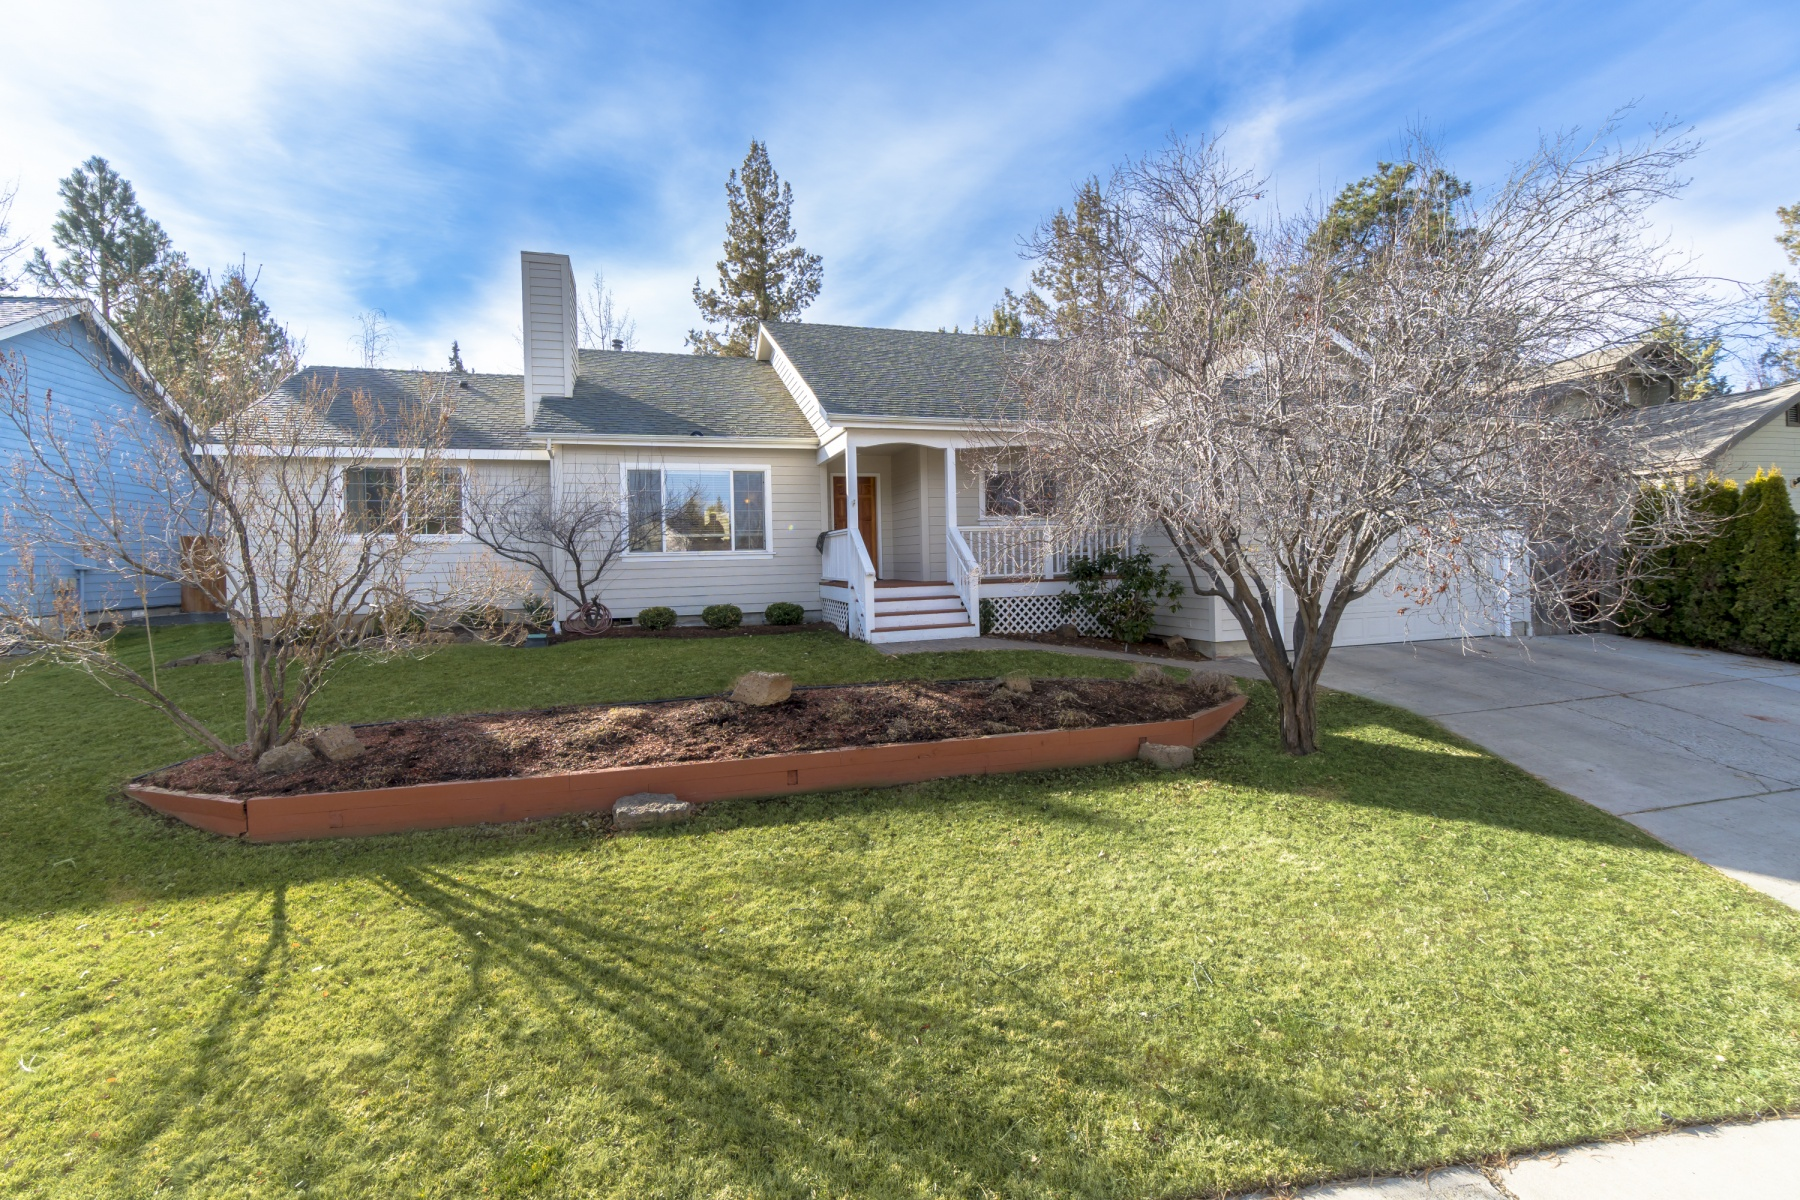 Single Family Home for Sale at Charming Single Level Home 1901 SE Autumnwood Ct, Bend, Oregon, 97702 United States